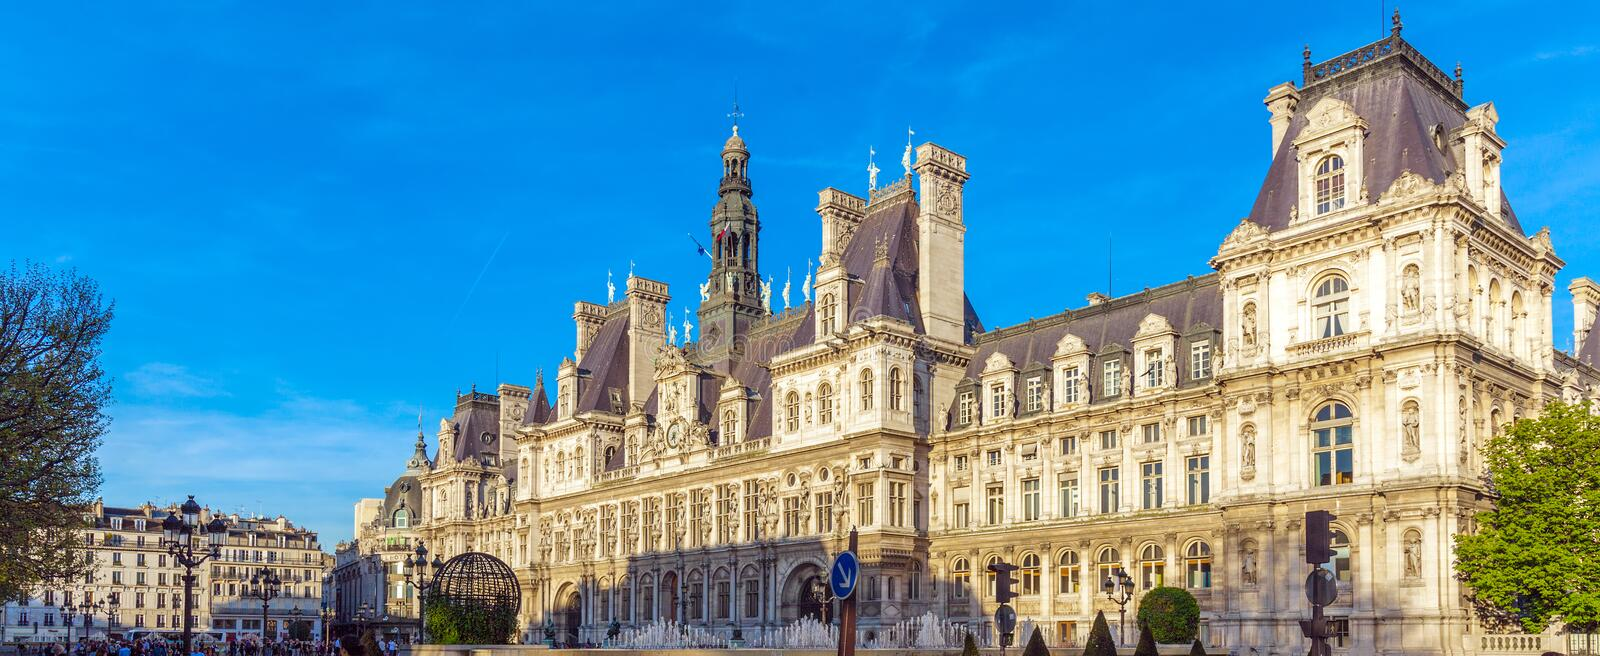 Office of Mayor of Paris - Hotel de Ville royalty free stock photography